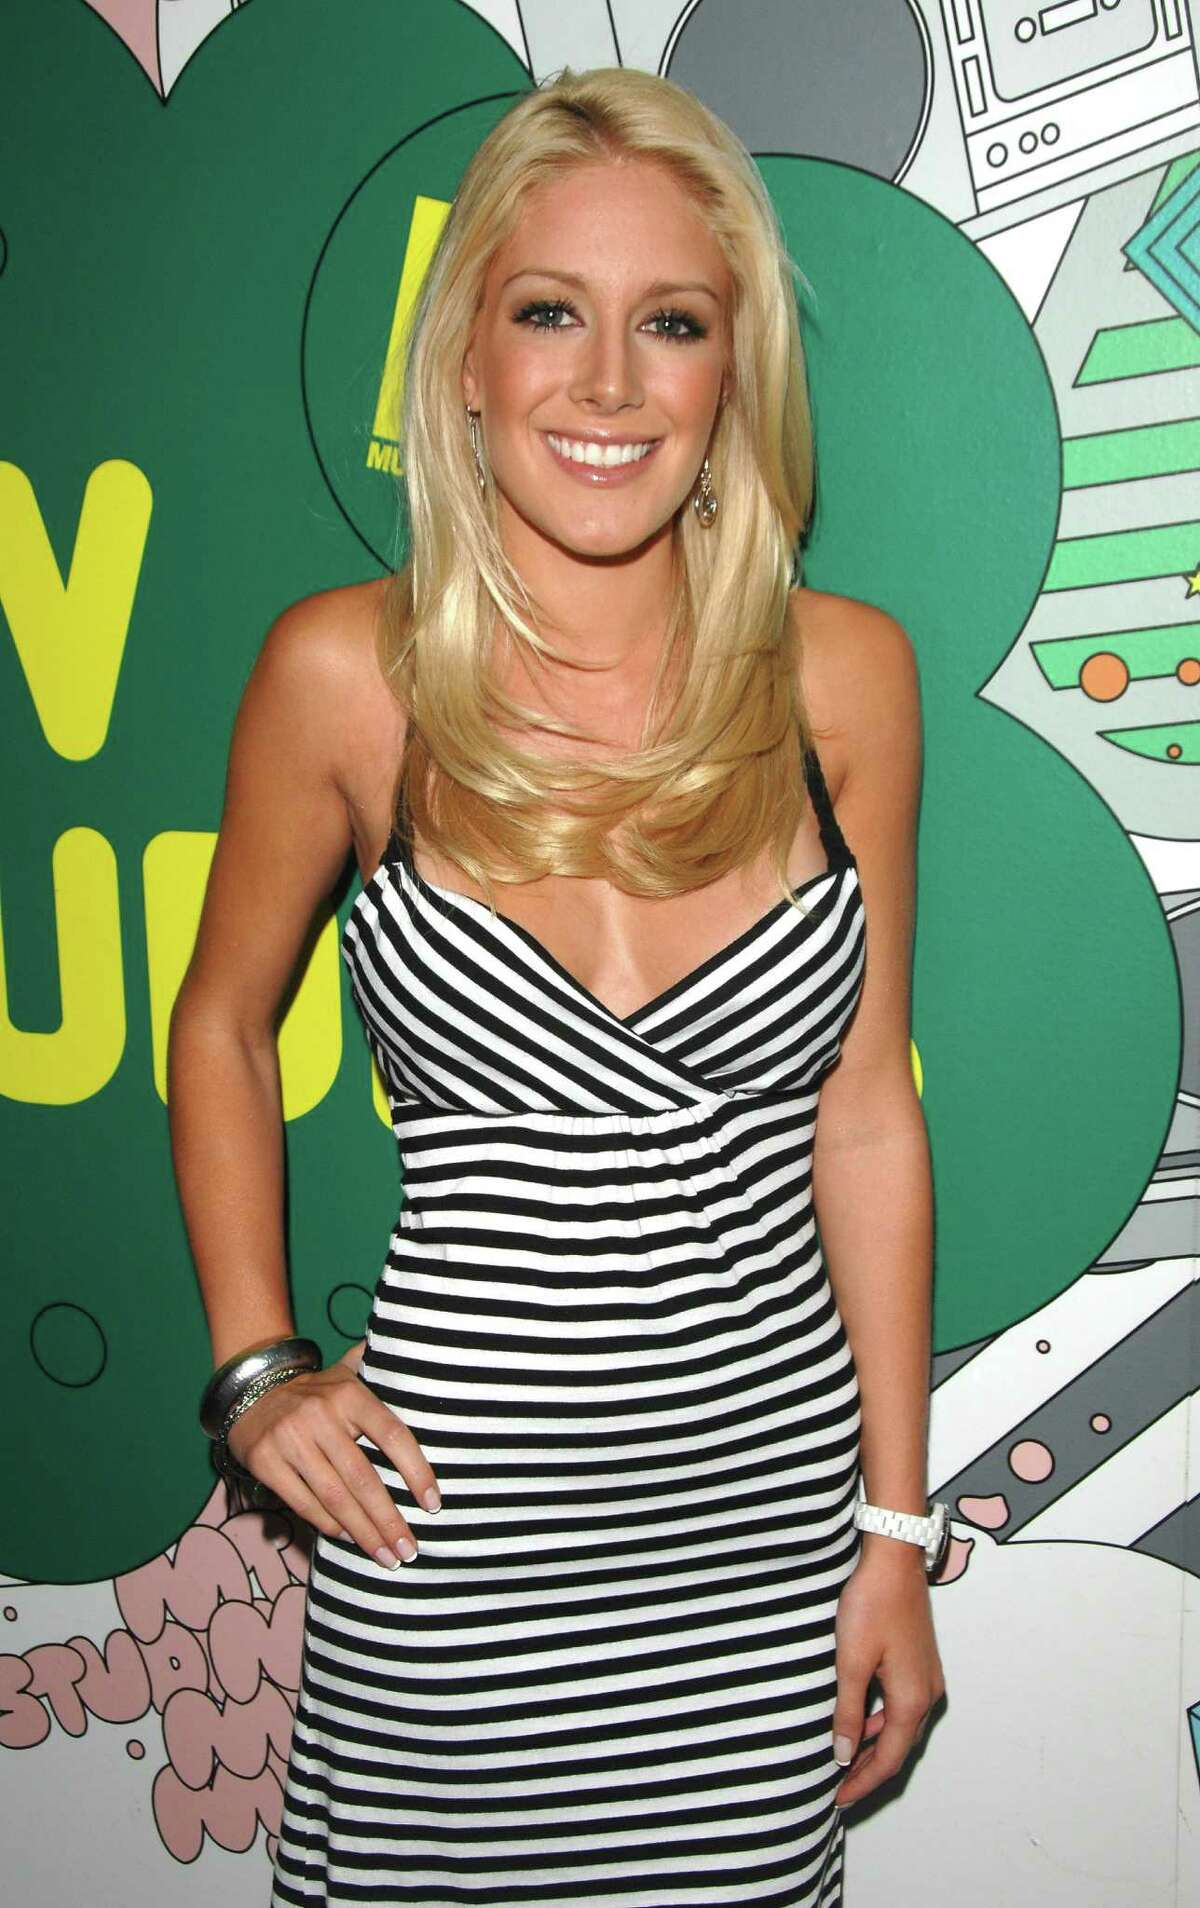 Bad celebrity plastic surgeryBEFORE: TV personality Heidi Montag makes an appearance for MTV's